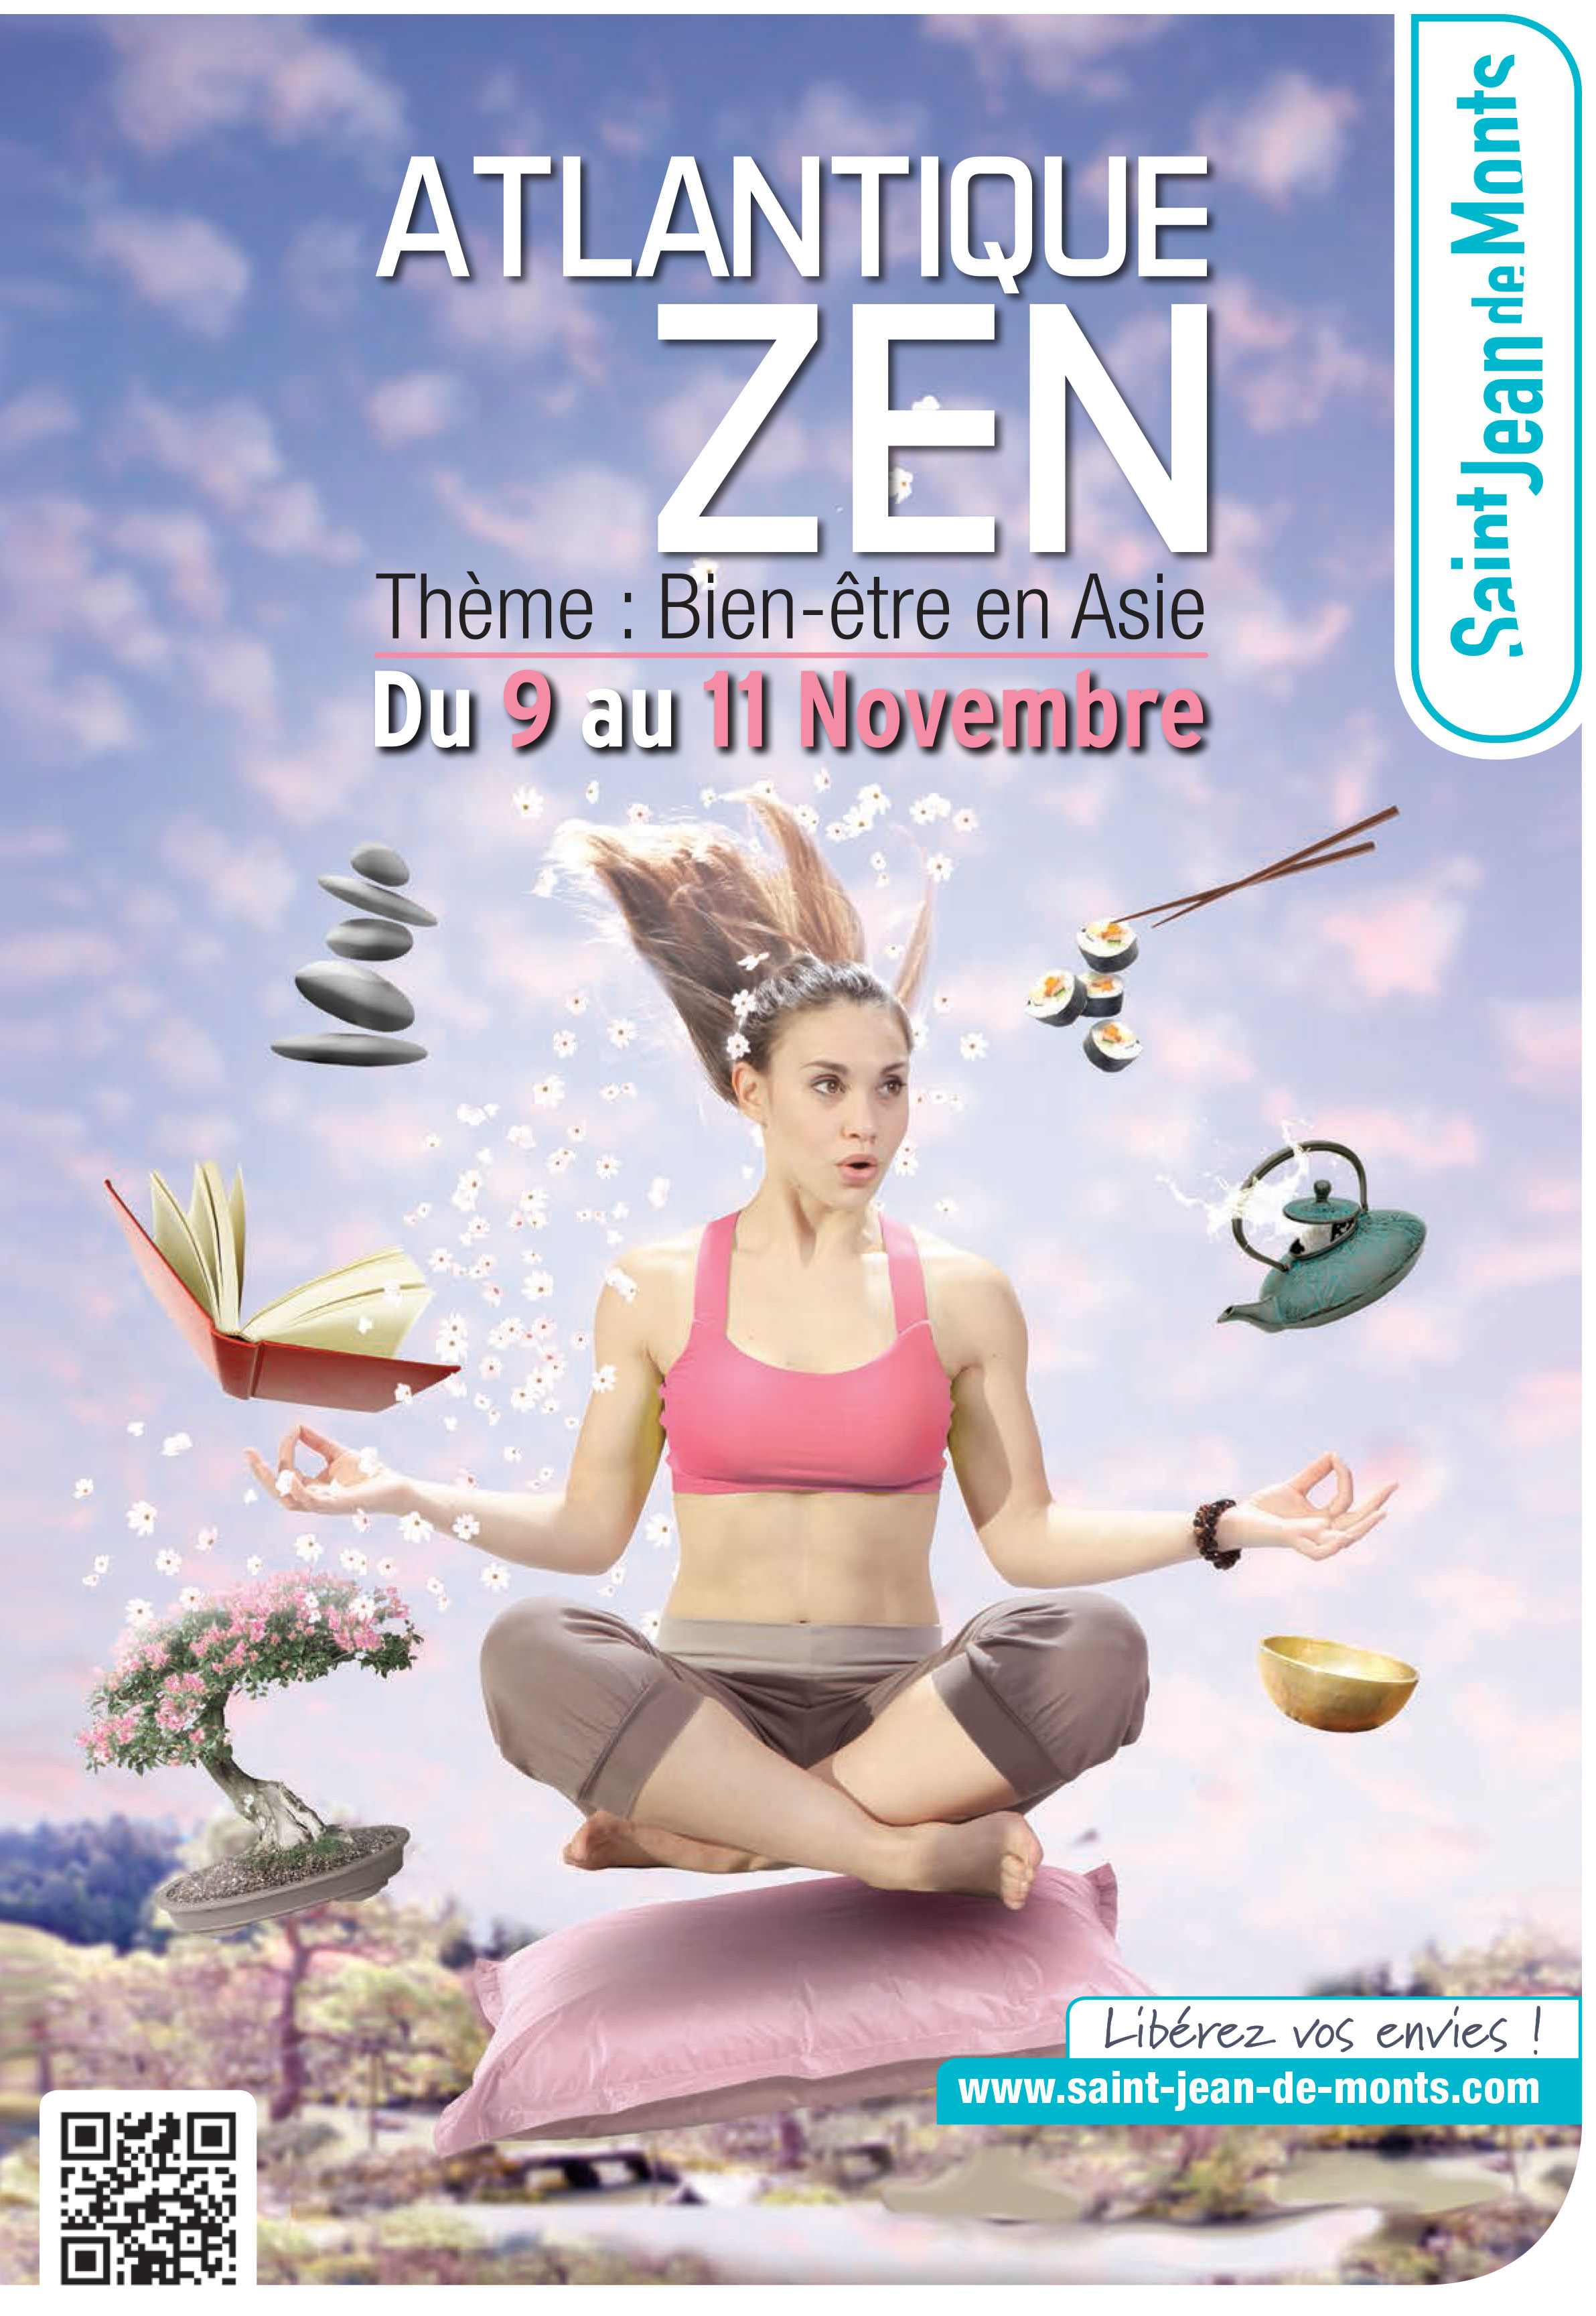 Salon Atlantique Zen Vendée Feng Shui